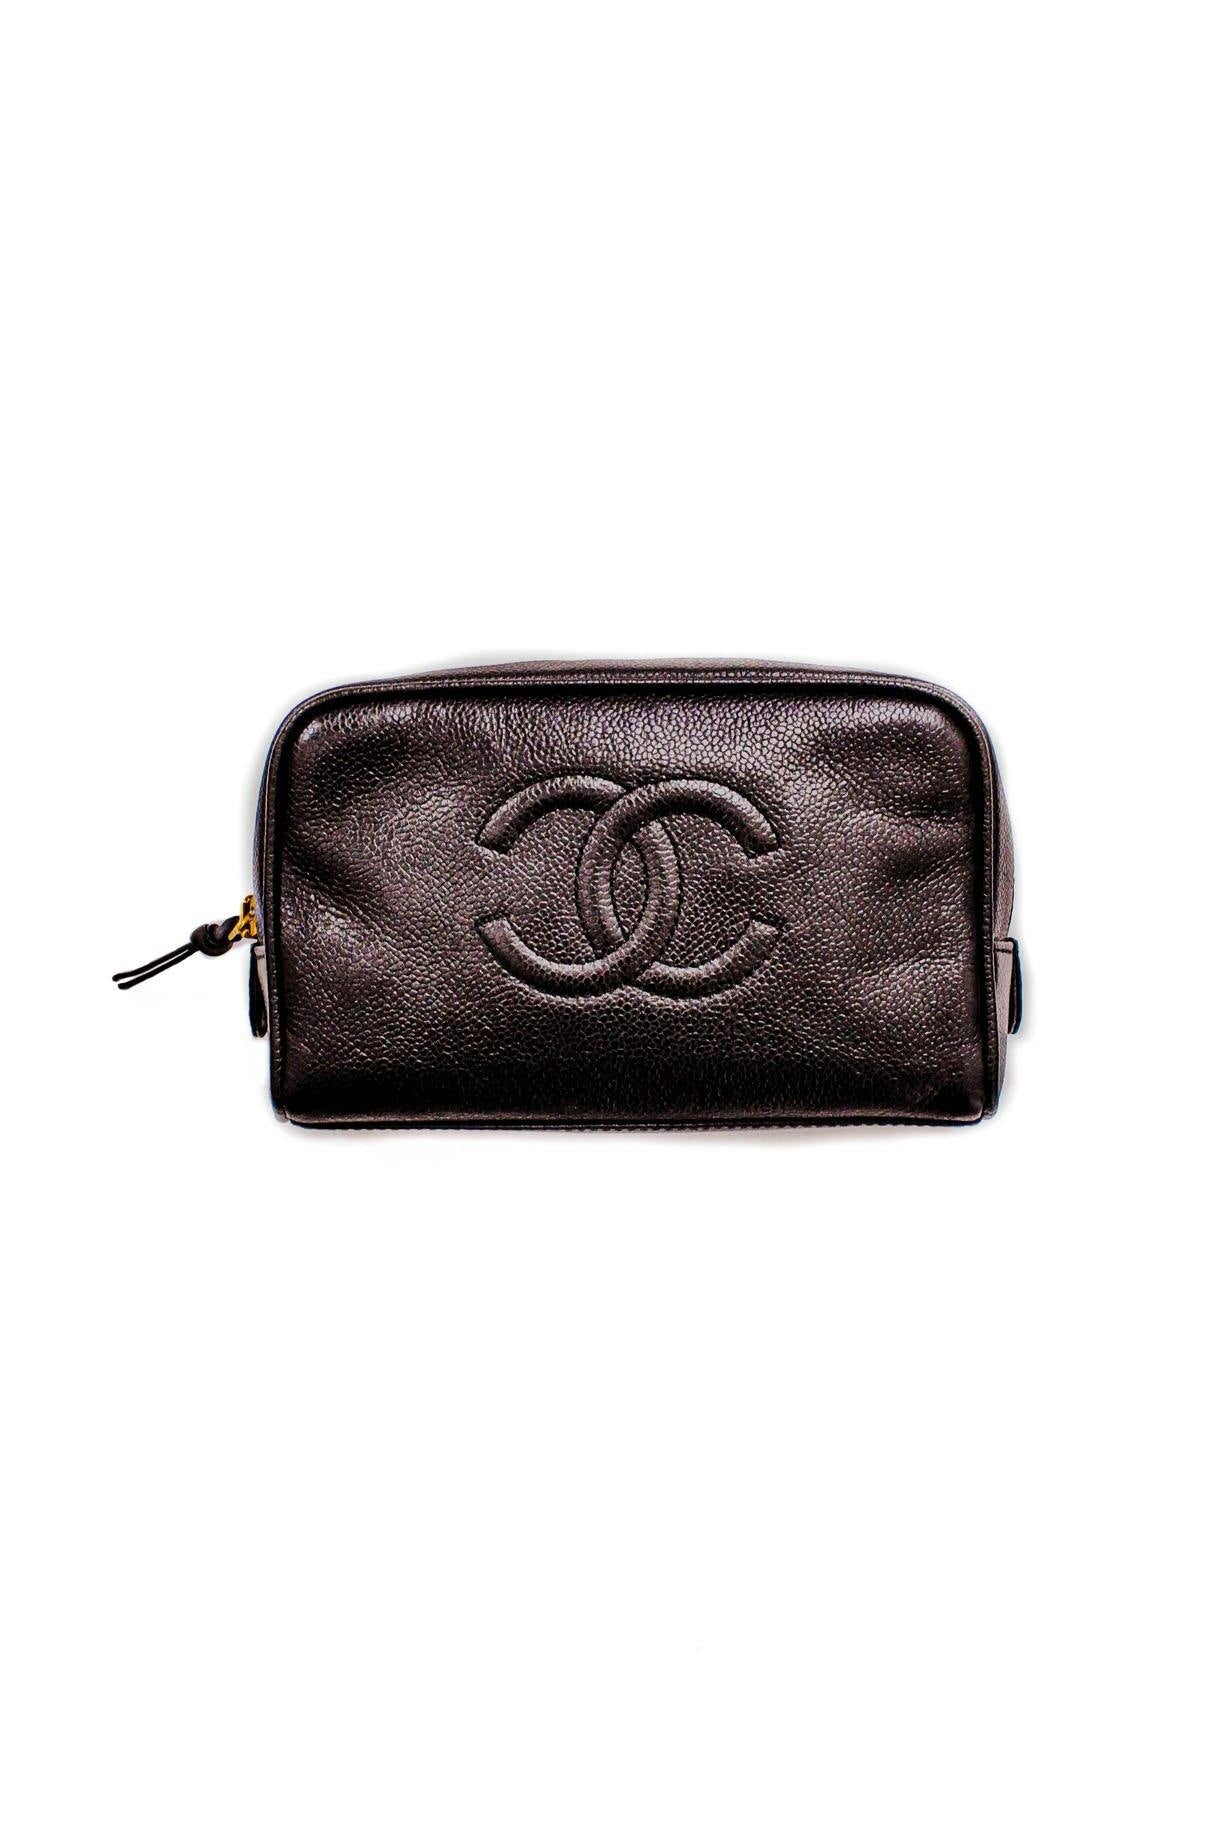 Vintage Chanel CC Black Caviar Leather Pouch from Sweet and Spark